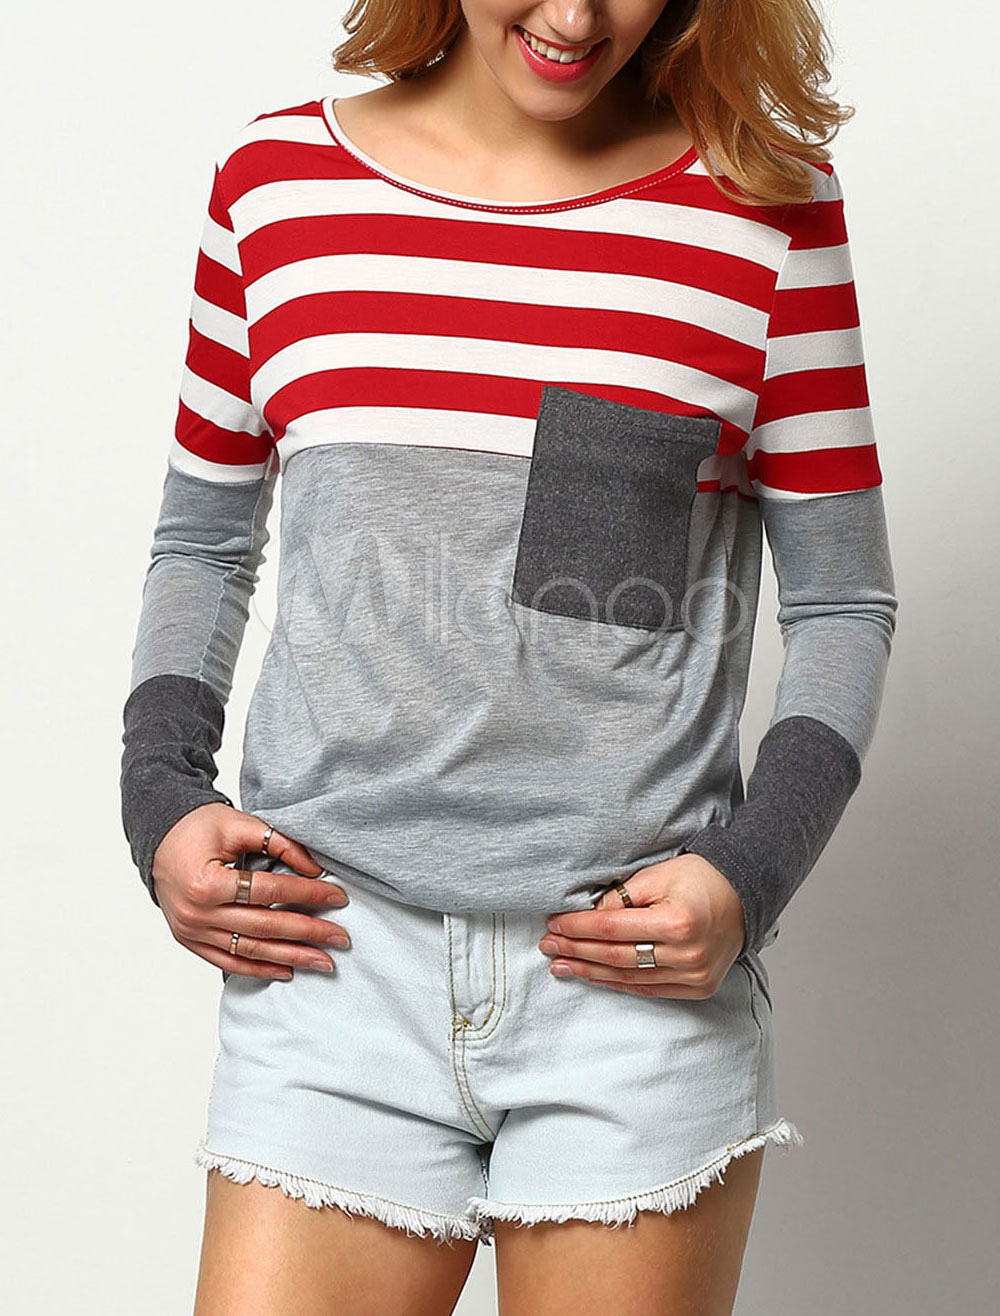 Buy Grey Cotton T Shirt Striped Patch Round Neck Long Sleeve Pockets Women's Casual Tee Top for $18.99 in Milanoo store